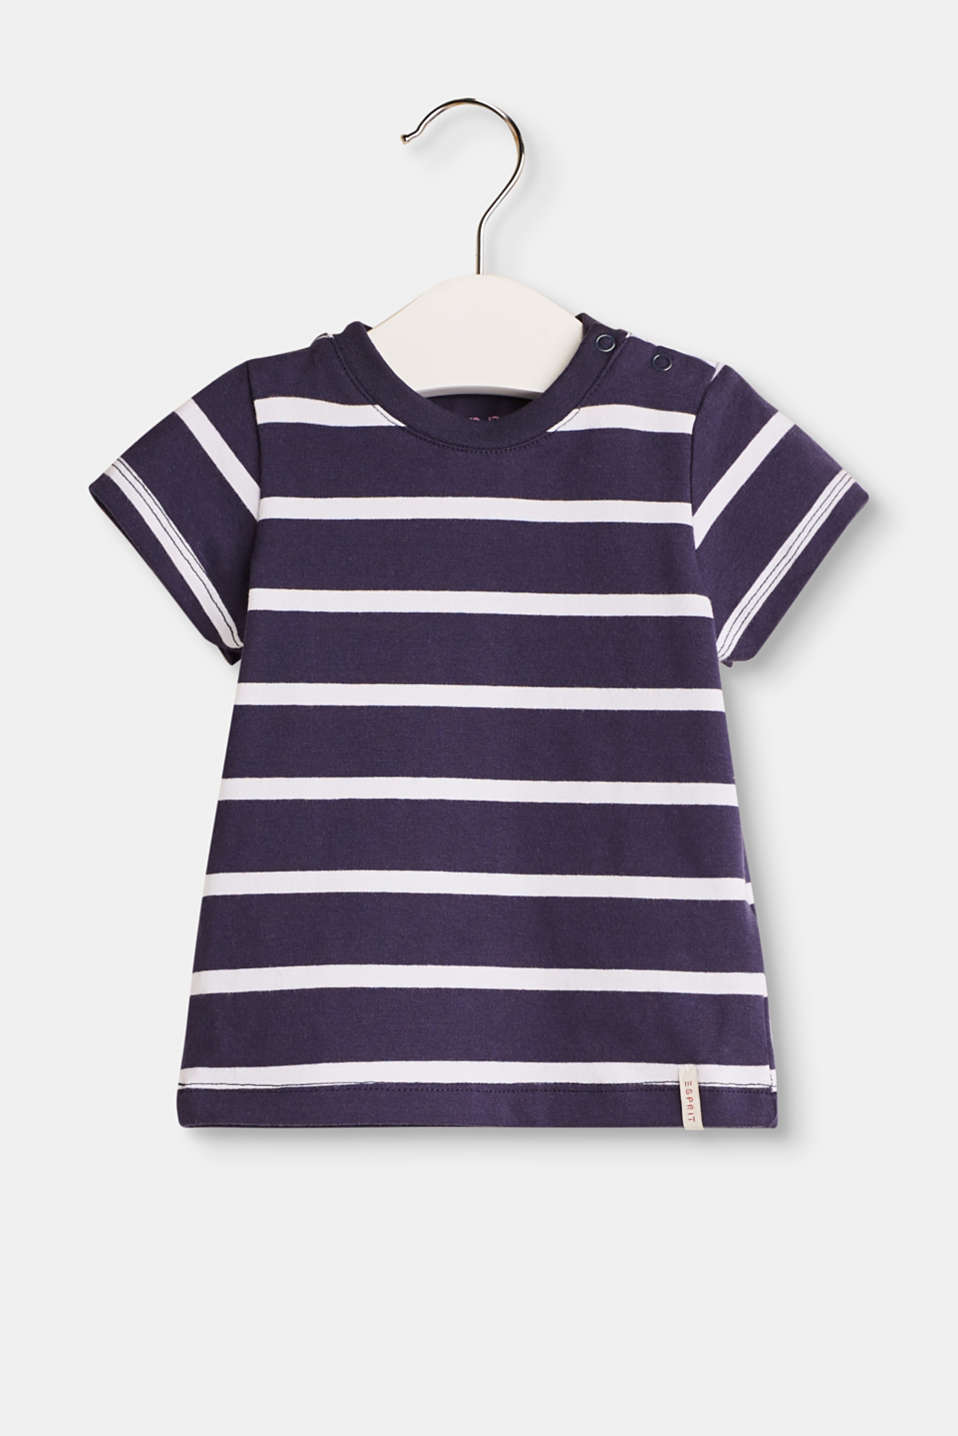 Esprit - T-shirt with nautical stripes, 100% cotton